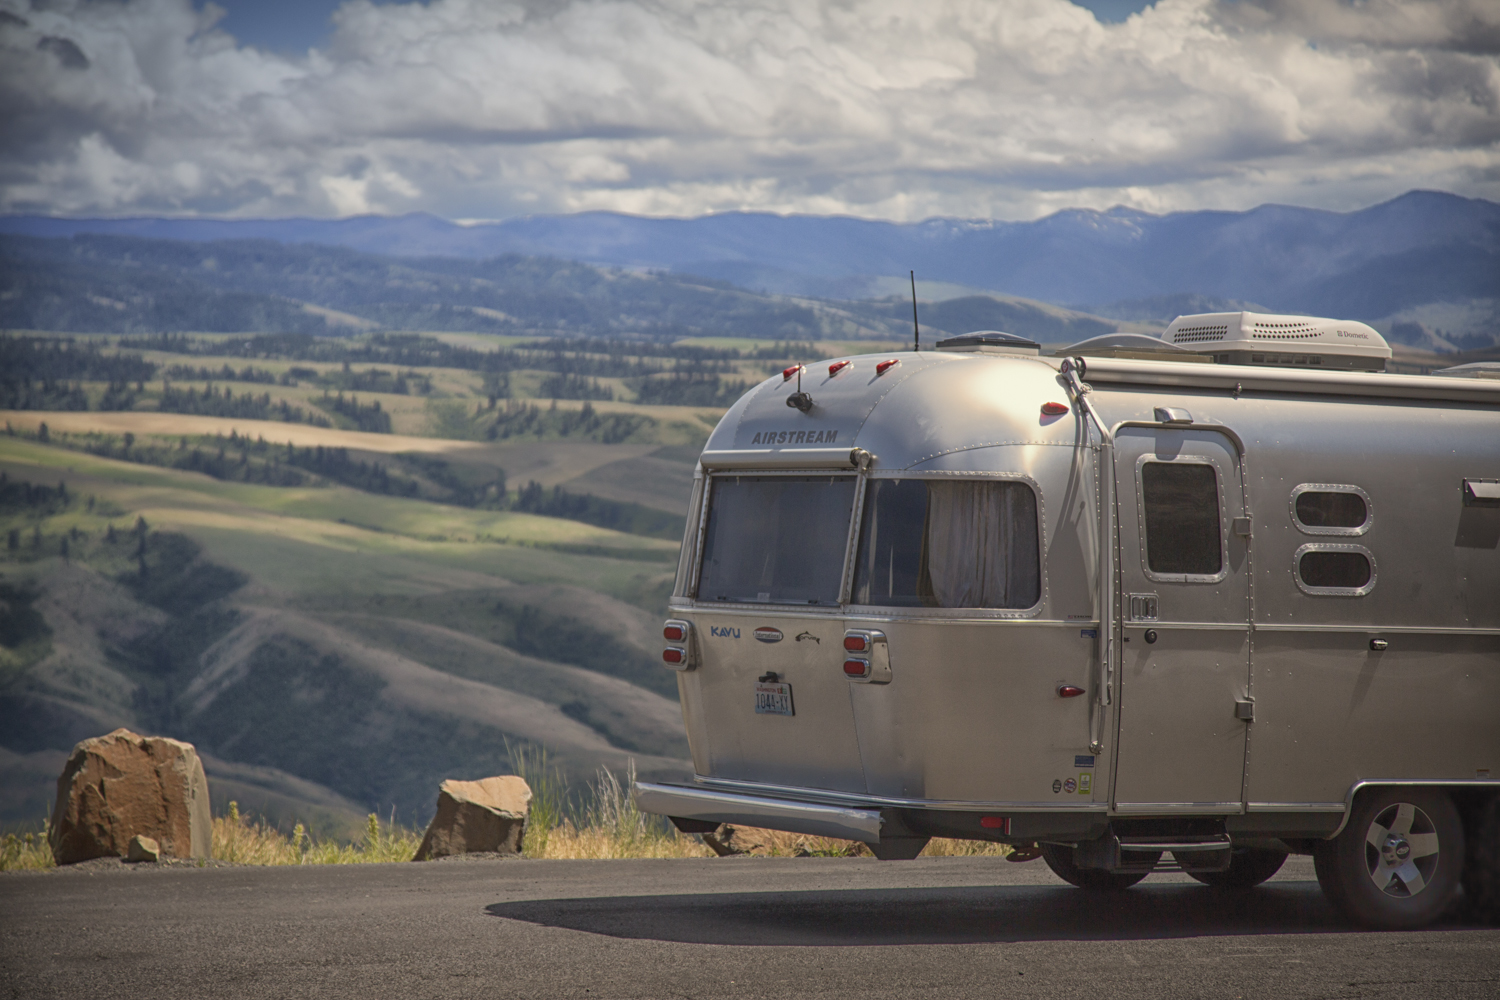 Airstream Trailer Rest Stop In Idaho via J5MM.com